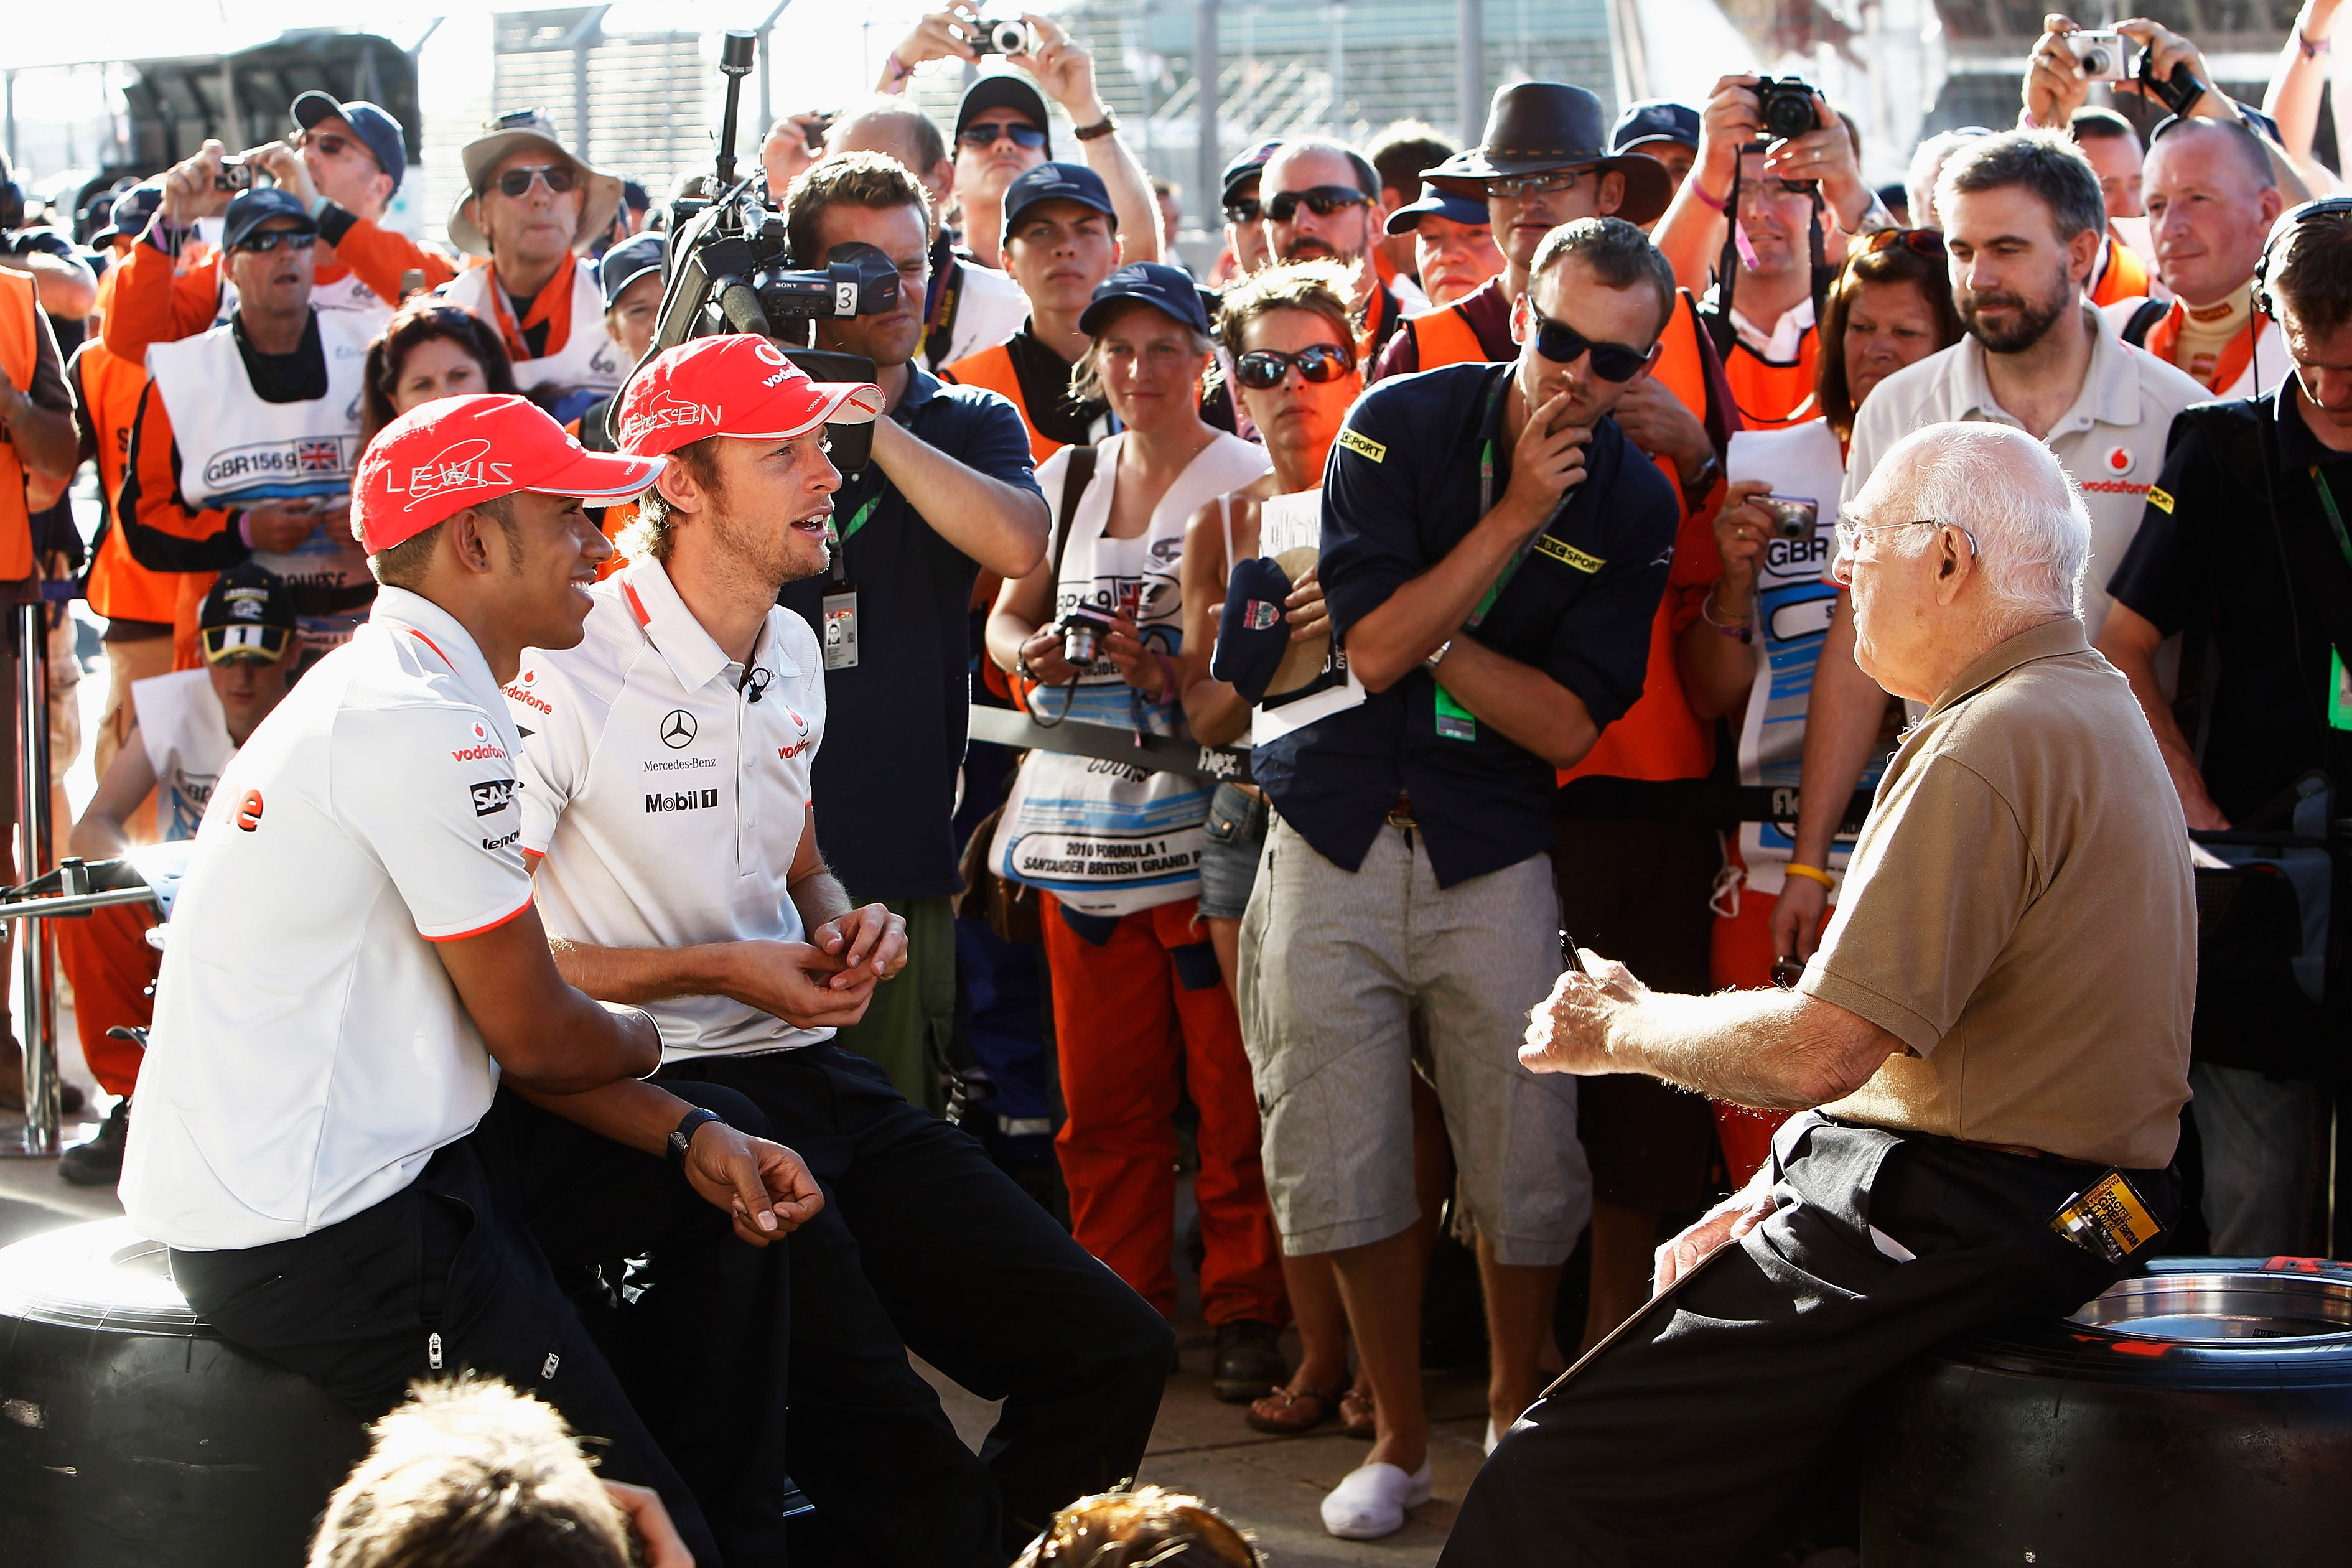 Lewis Hamilton and Jenson Button are interviewed by Murray Walker in 2010